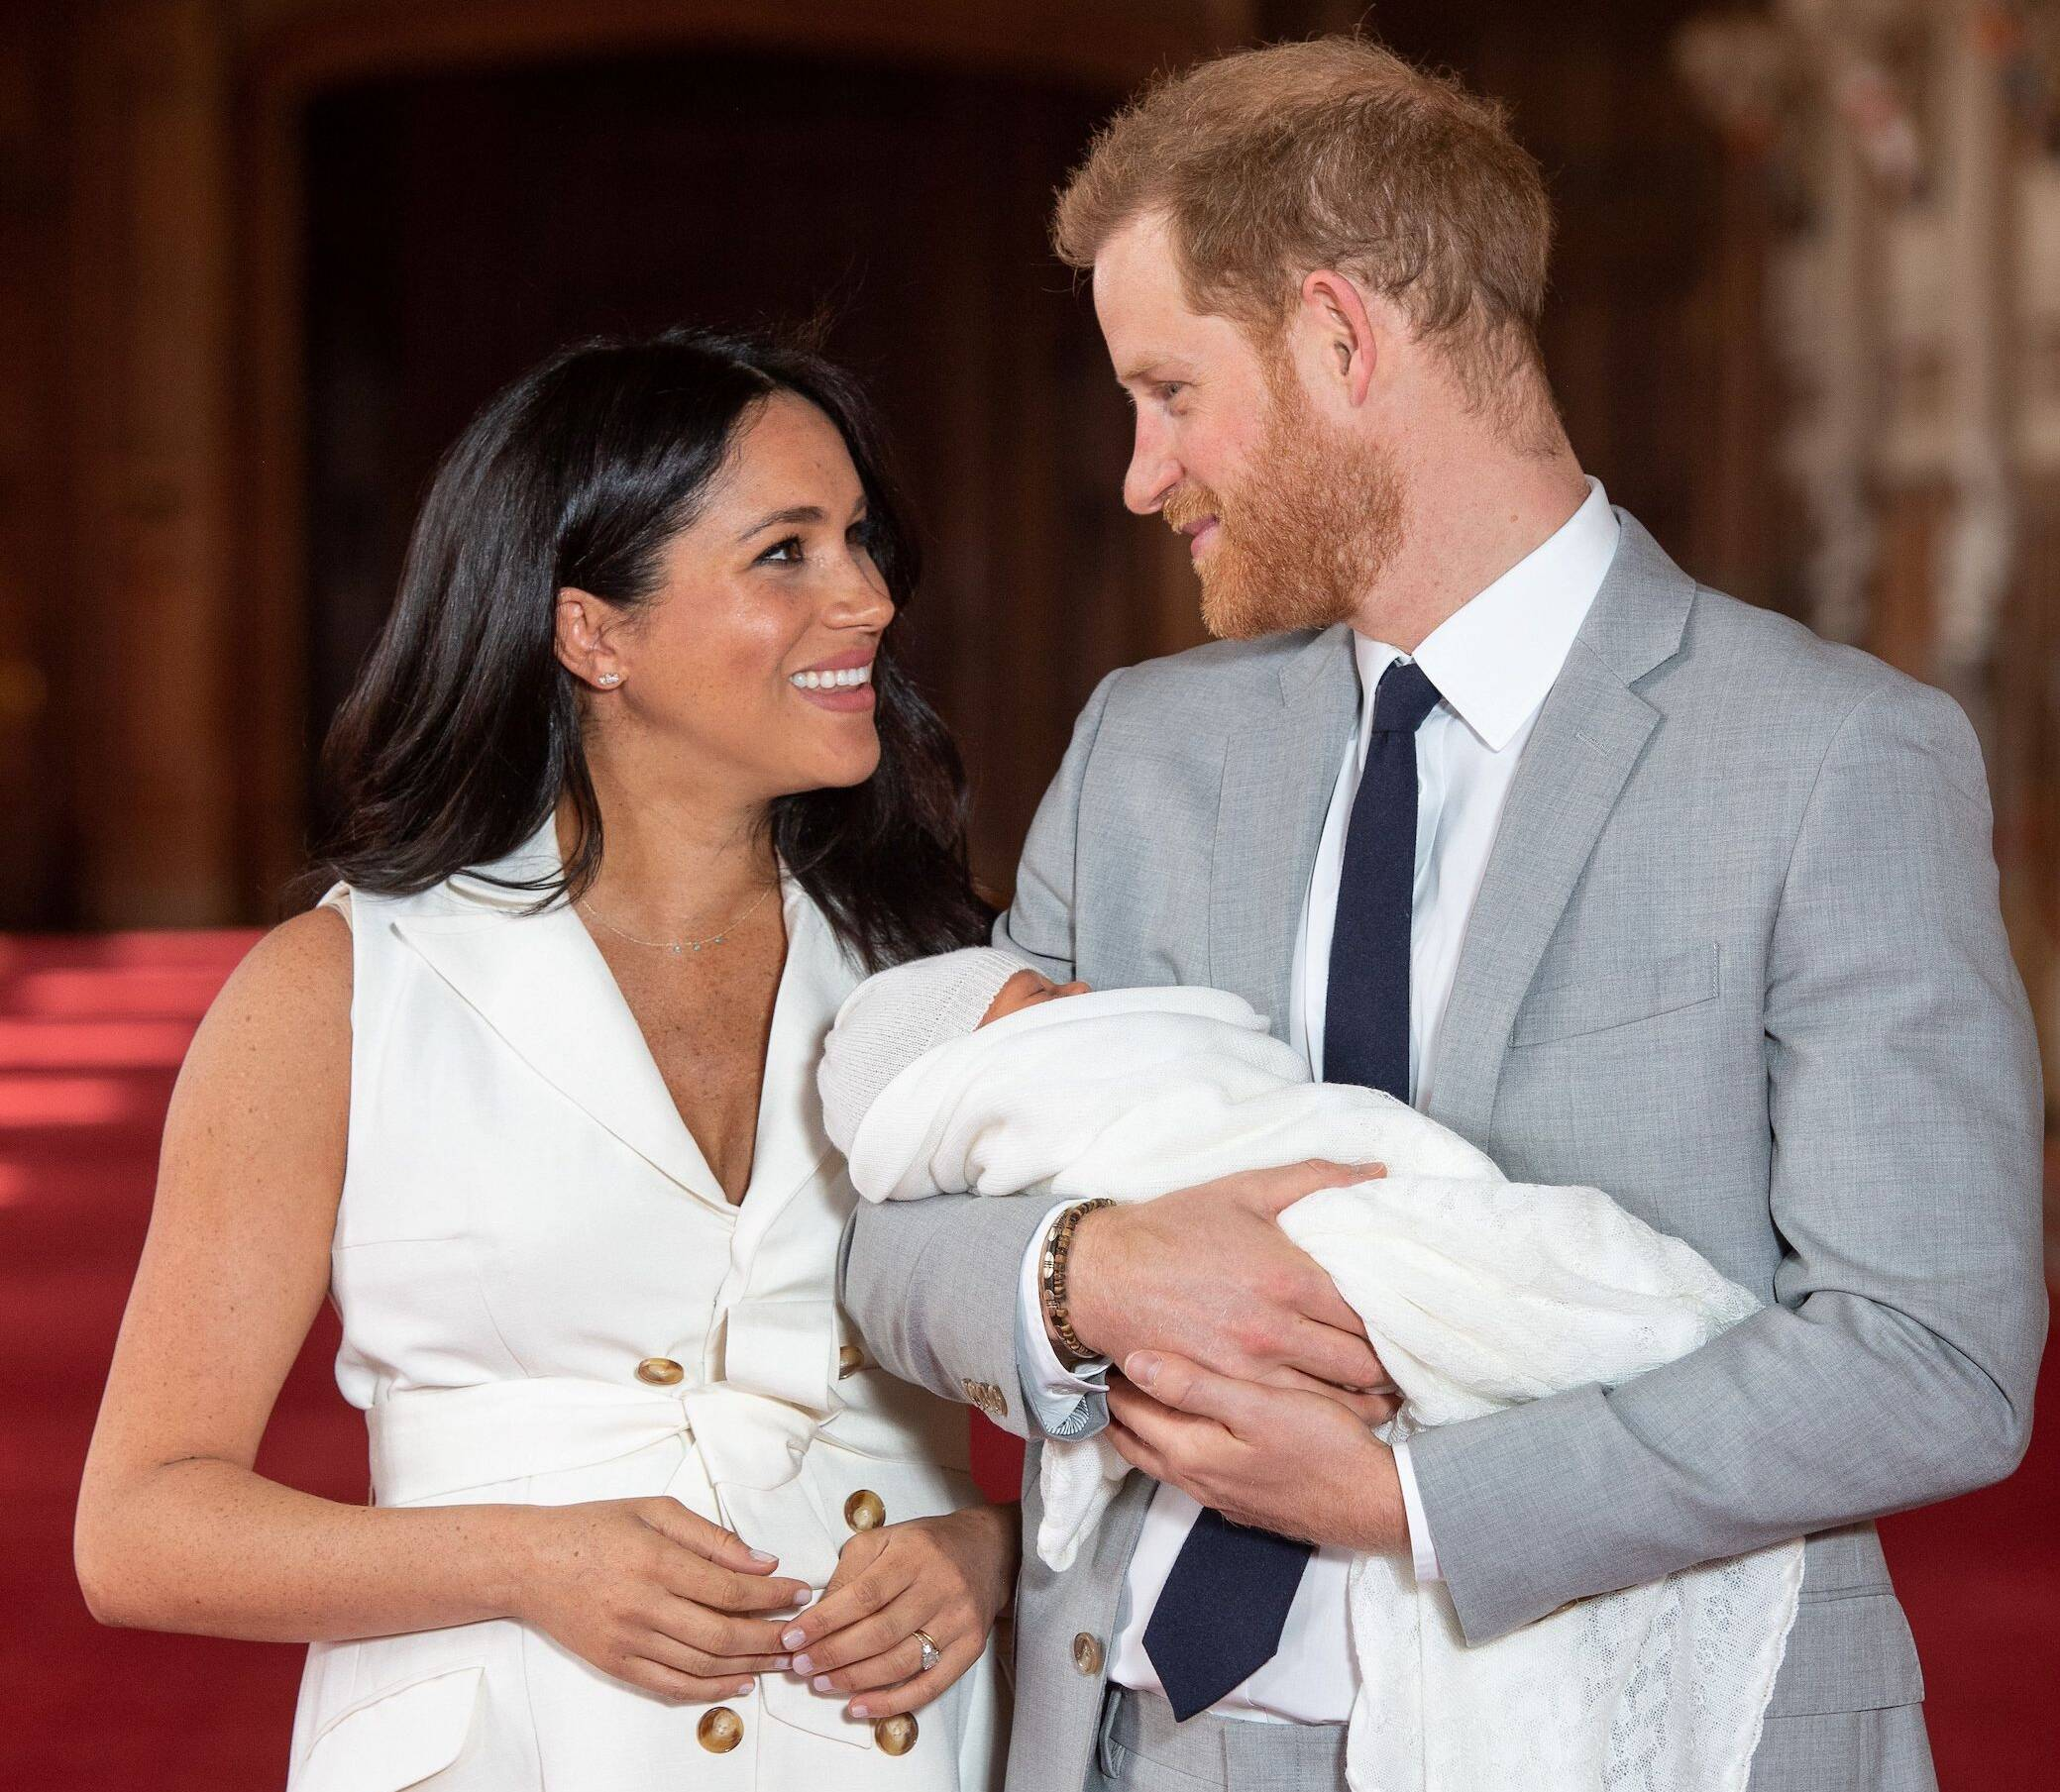 Baby Sussex: So teuer war Archies erstes Outfit